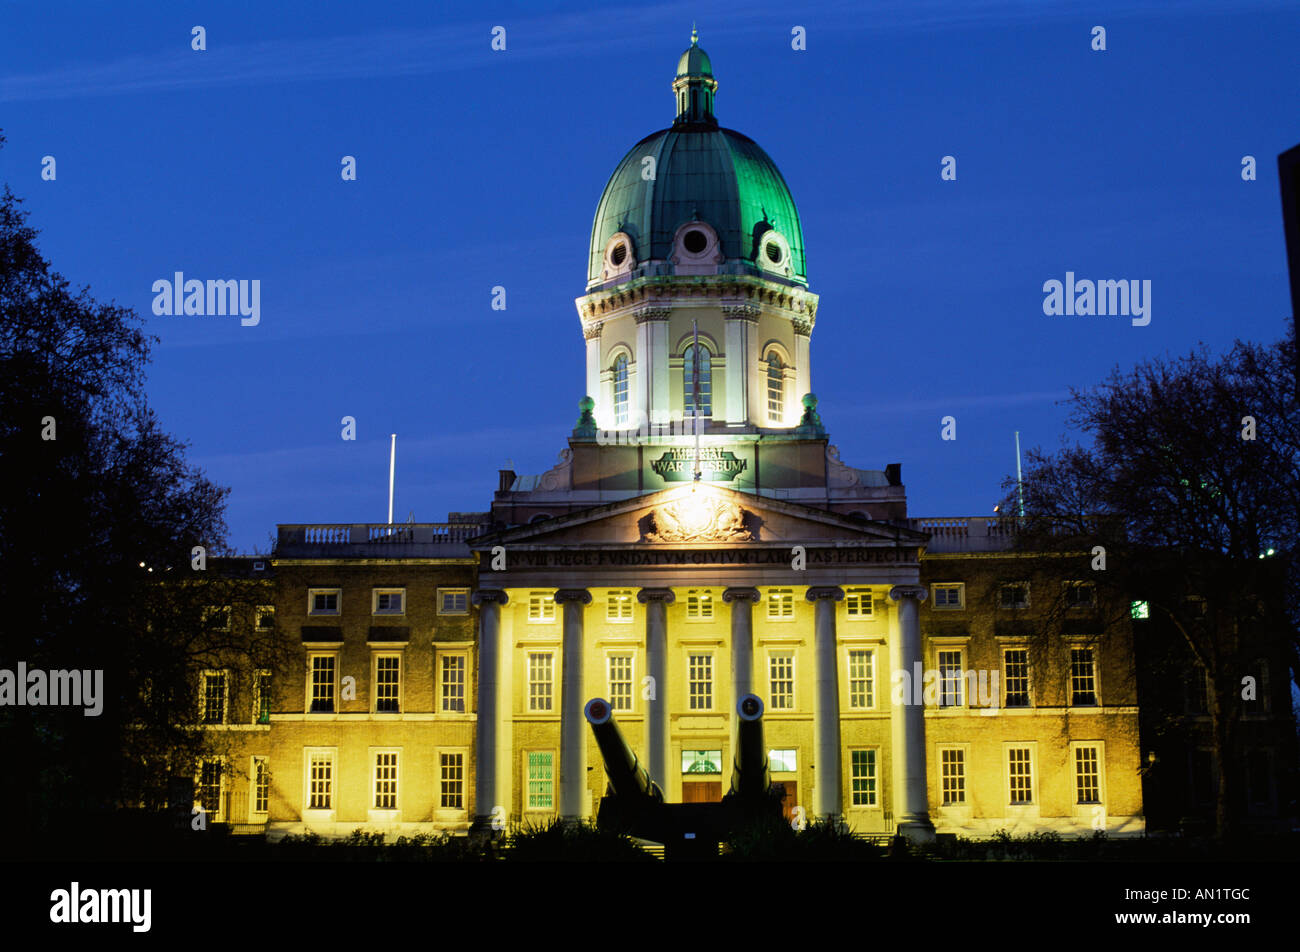 England,London,Lambeth,Imperial War Museum at Dusk - Stock Image